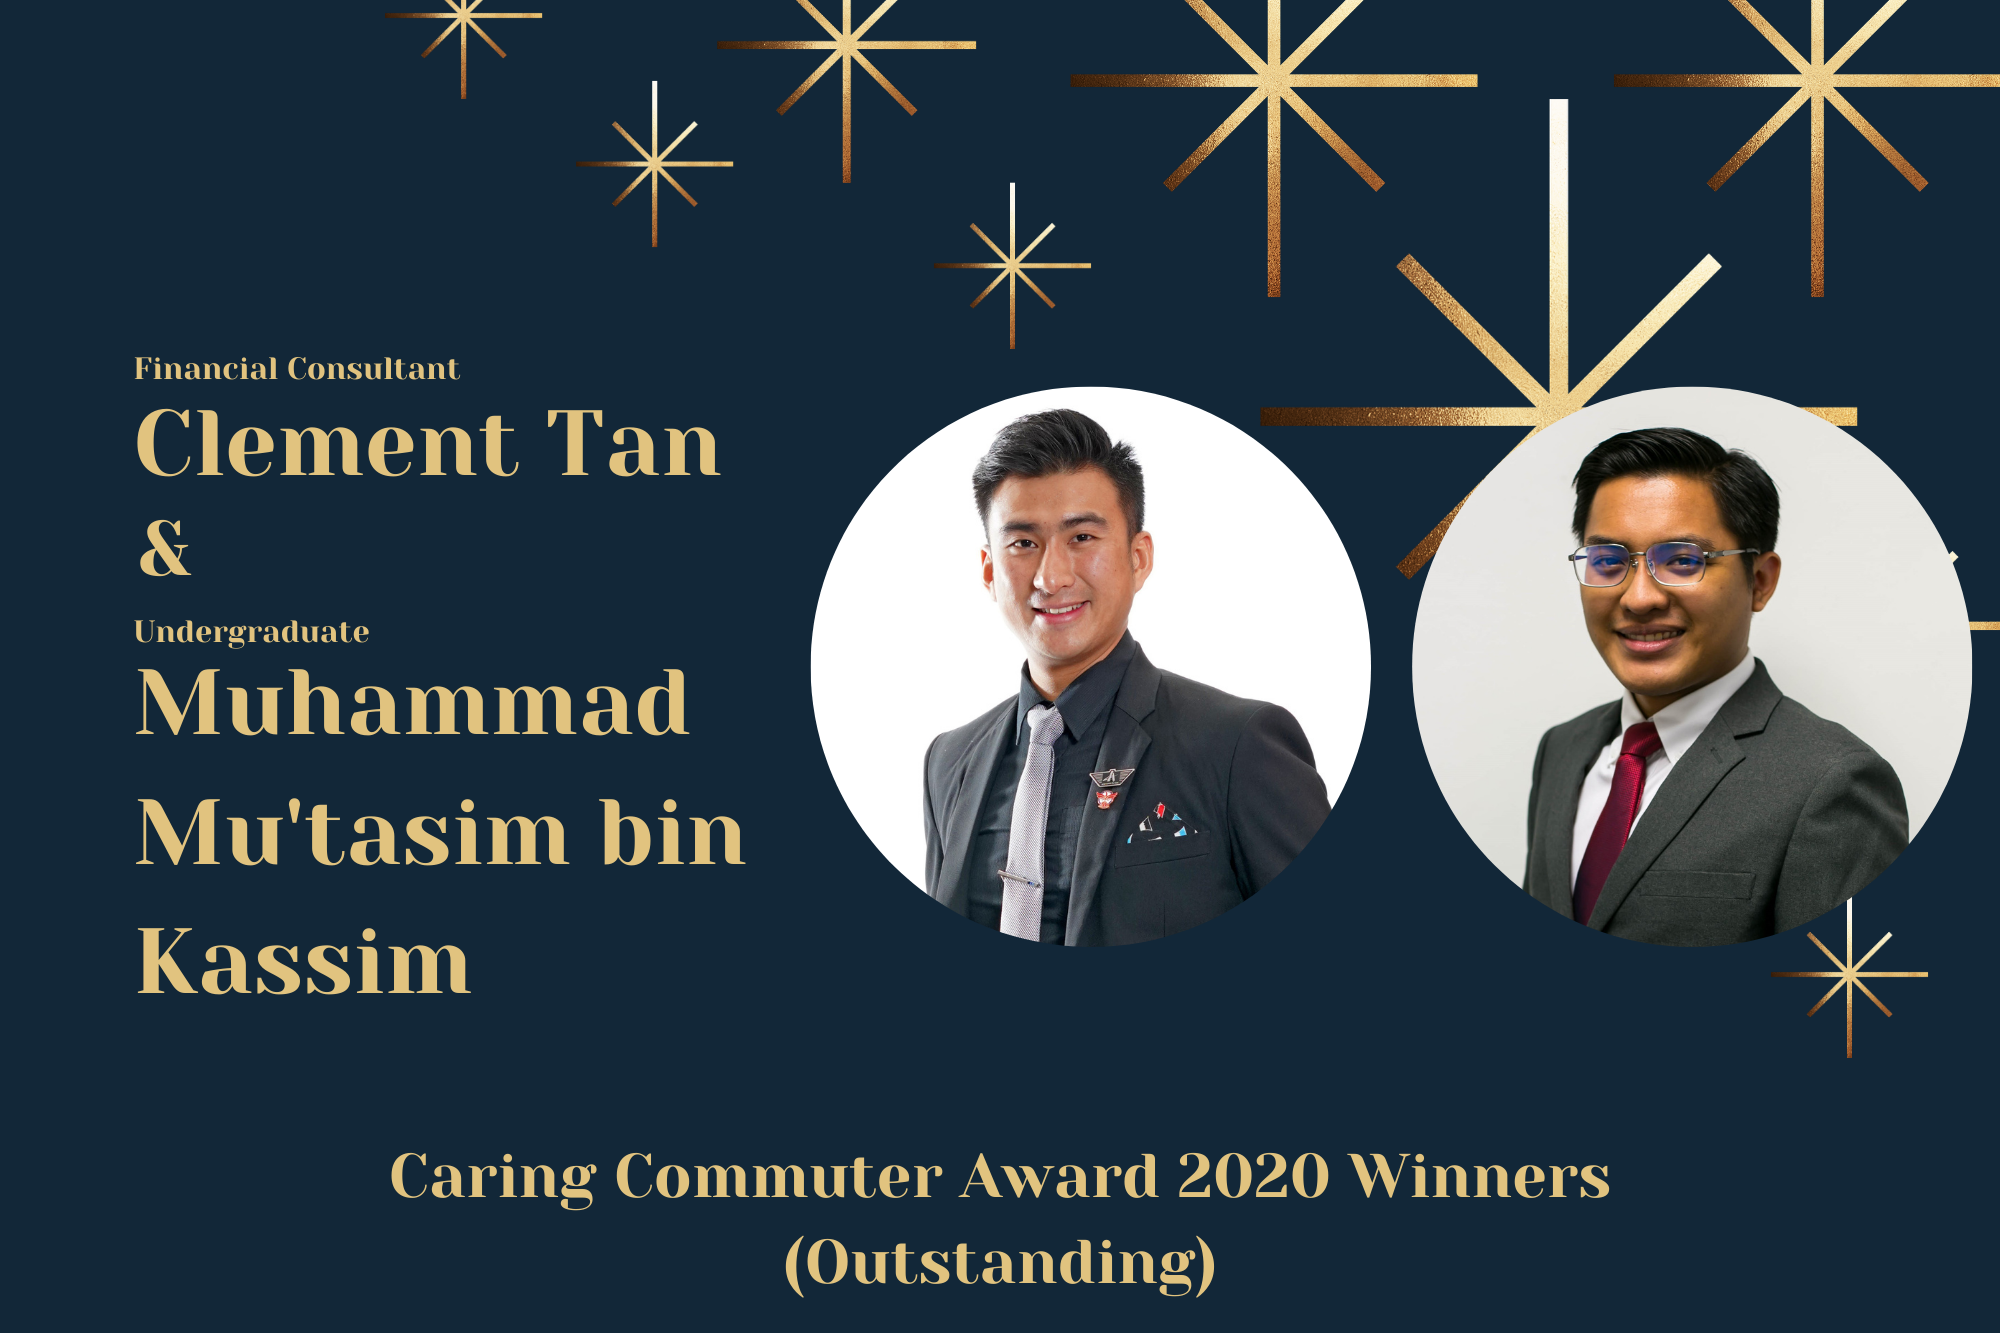 Meet Clement and Mu'tasim, A Financial Consultant and Undergraduate Pair, and Caring Commuter Award 2020 Outstanding Winners